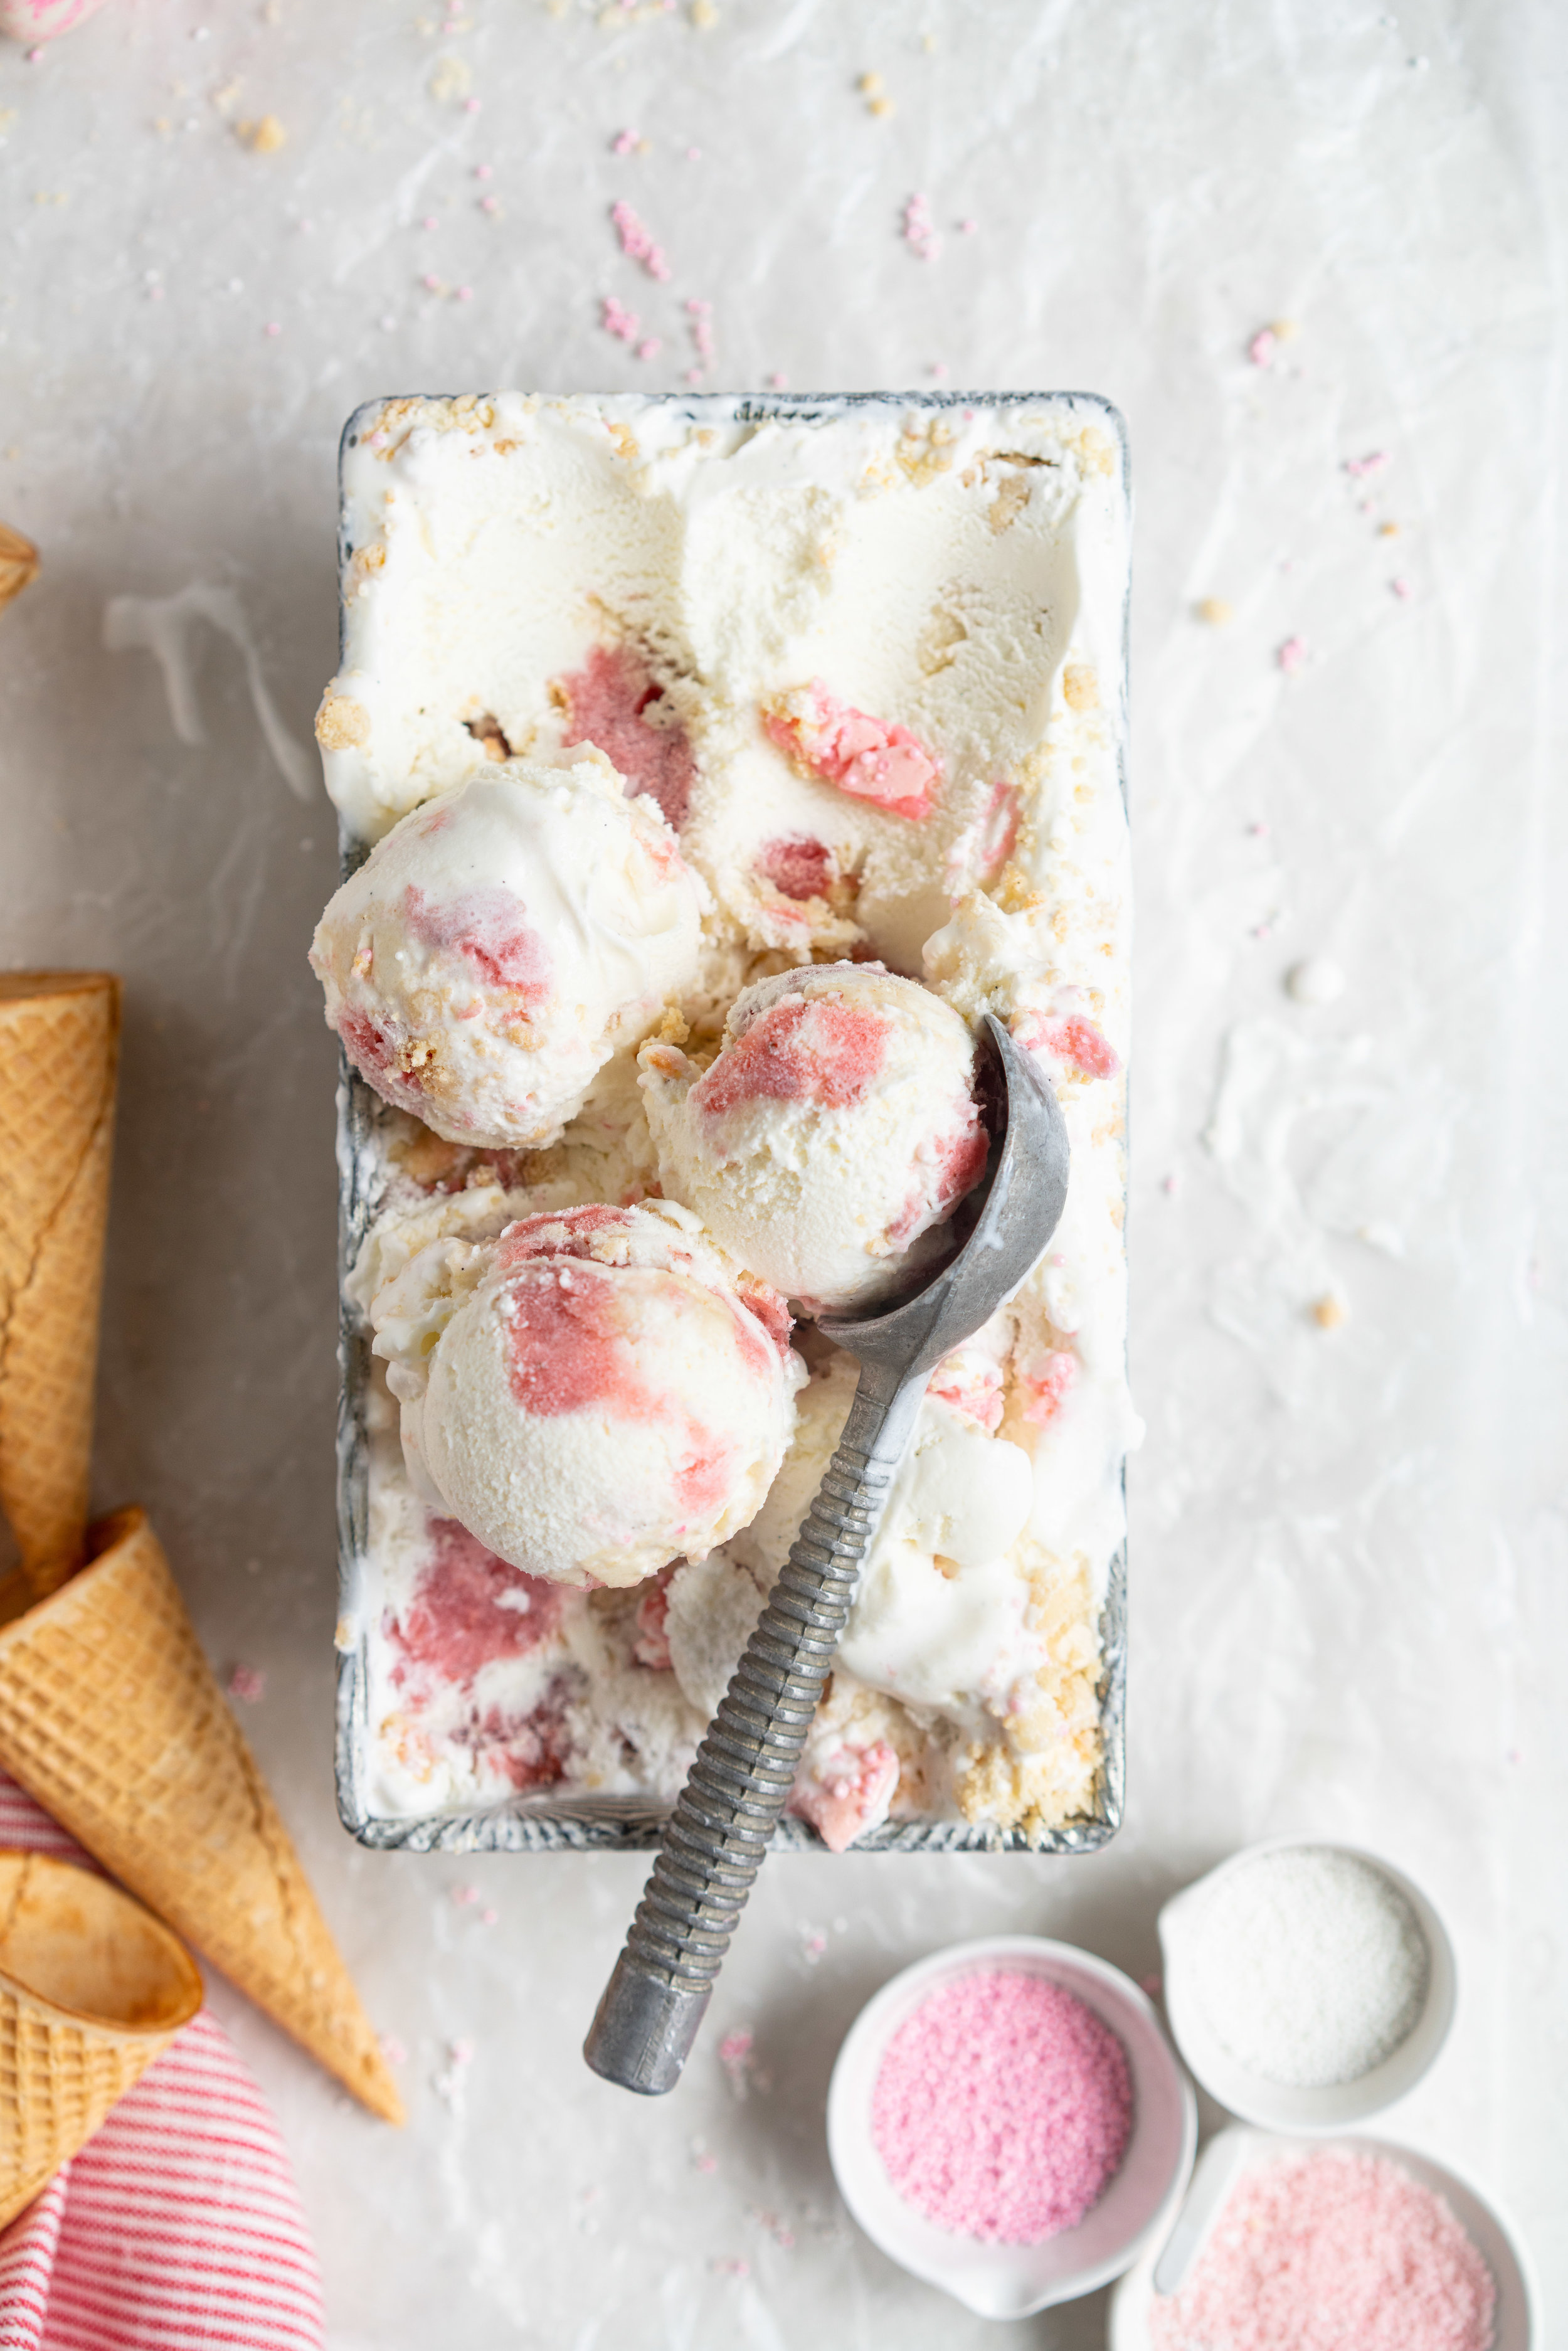 Strawberry shortcake macaron ice cream - the makings of strawberry shortcake macarons are layered up in a creamy philadelphia style ice cream base and frozen up into the perfect treat #philadelphiastyle #icecream #macaronicecream